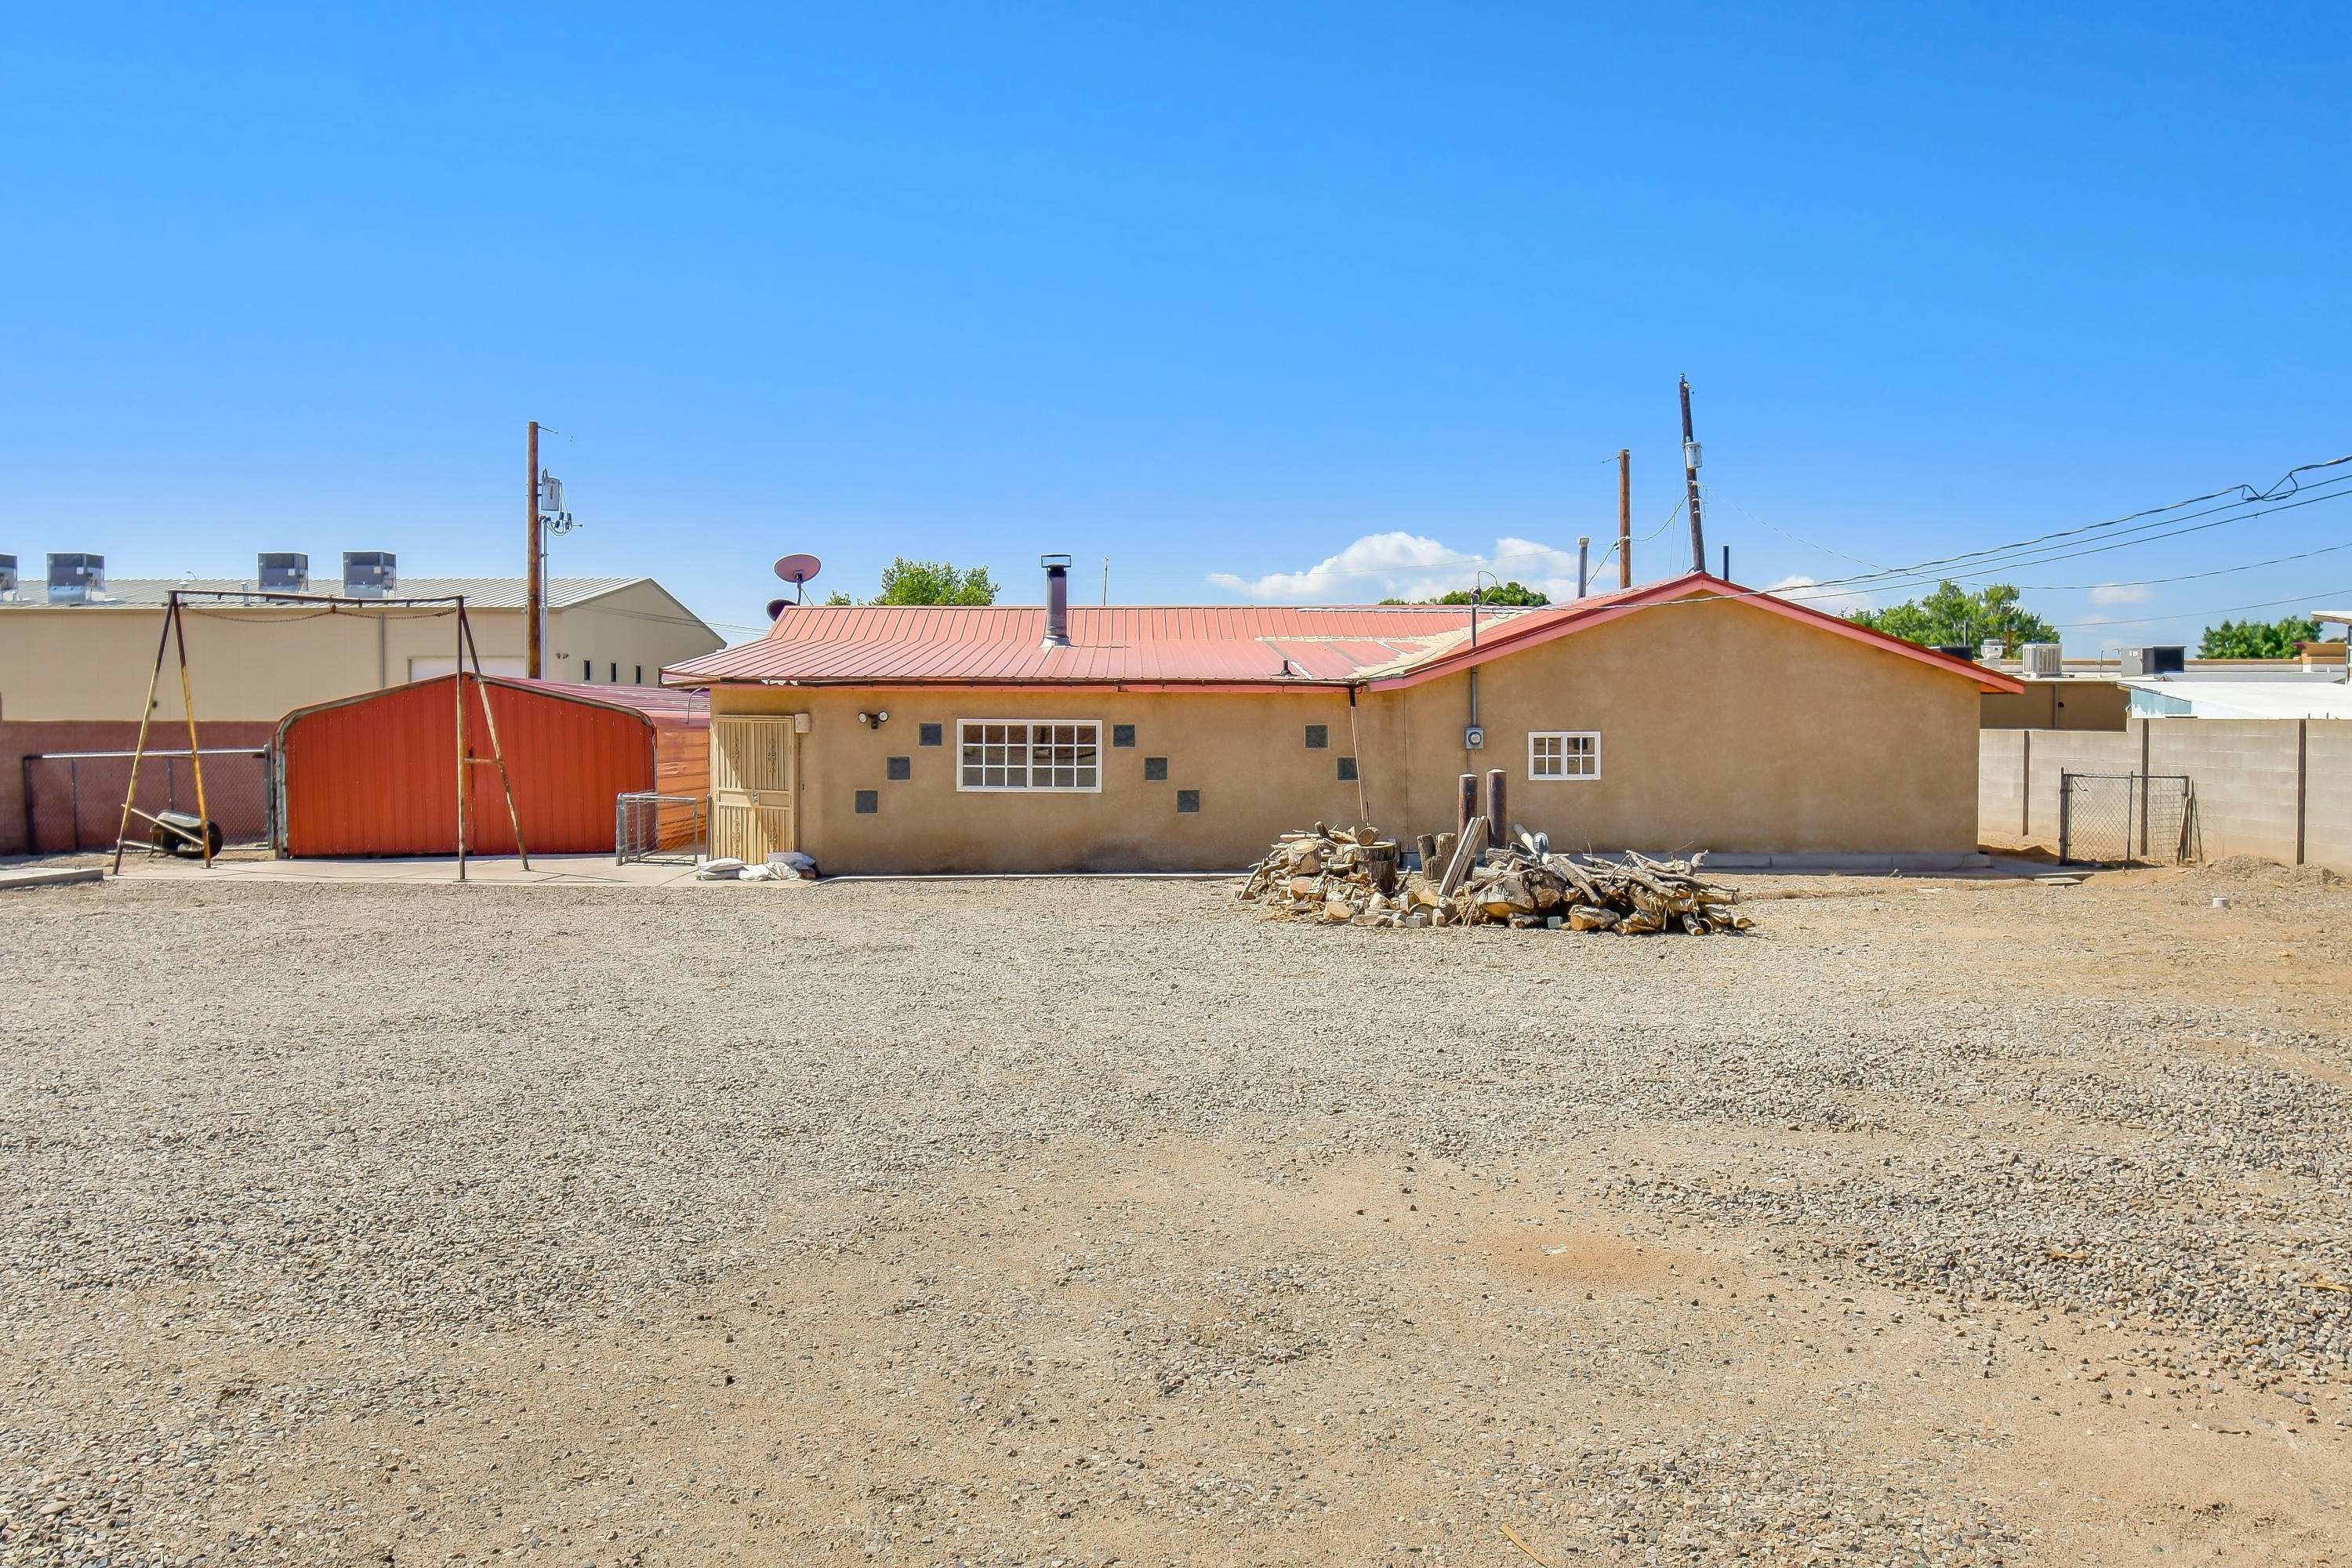 Great opportunity to own a nice piece of property in the heart of town.  This home sits on a half acre lot with gated and walled privacy.  Home is spacious and will need some updating.  Additional workshop buildings on the property are large and offer numerous possibilities.  Come see this special property today.